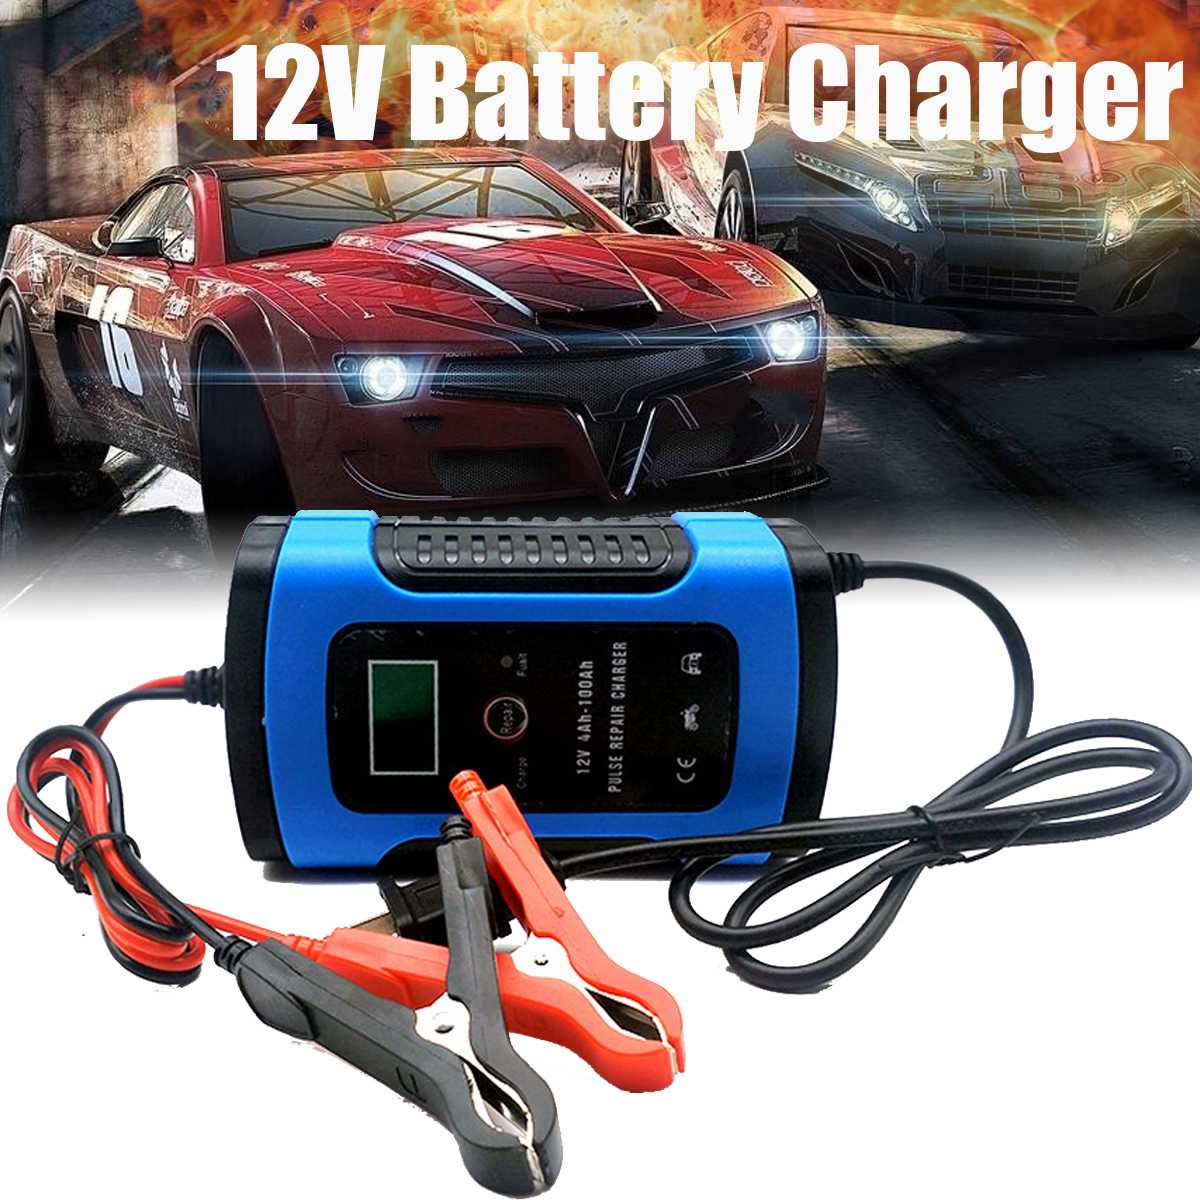 7-stage 12V 5A Smart Car Battery Charger Desulfator Maintainer 6-120AH Batteries